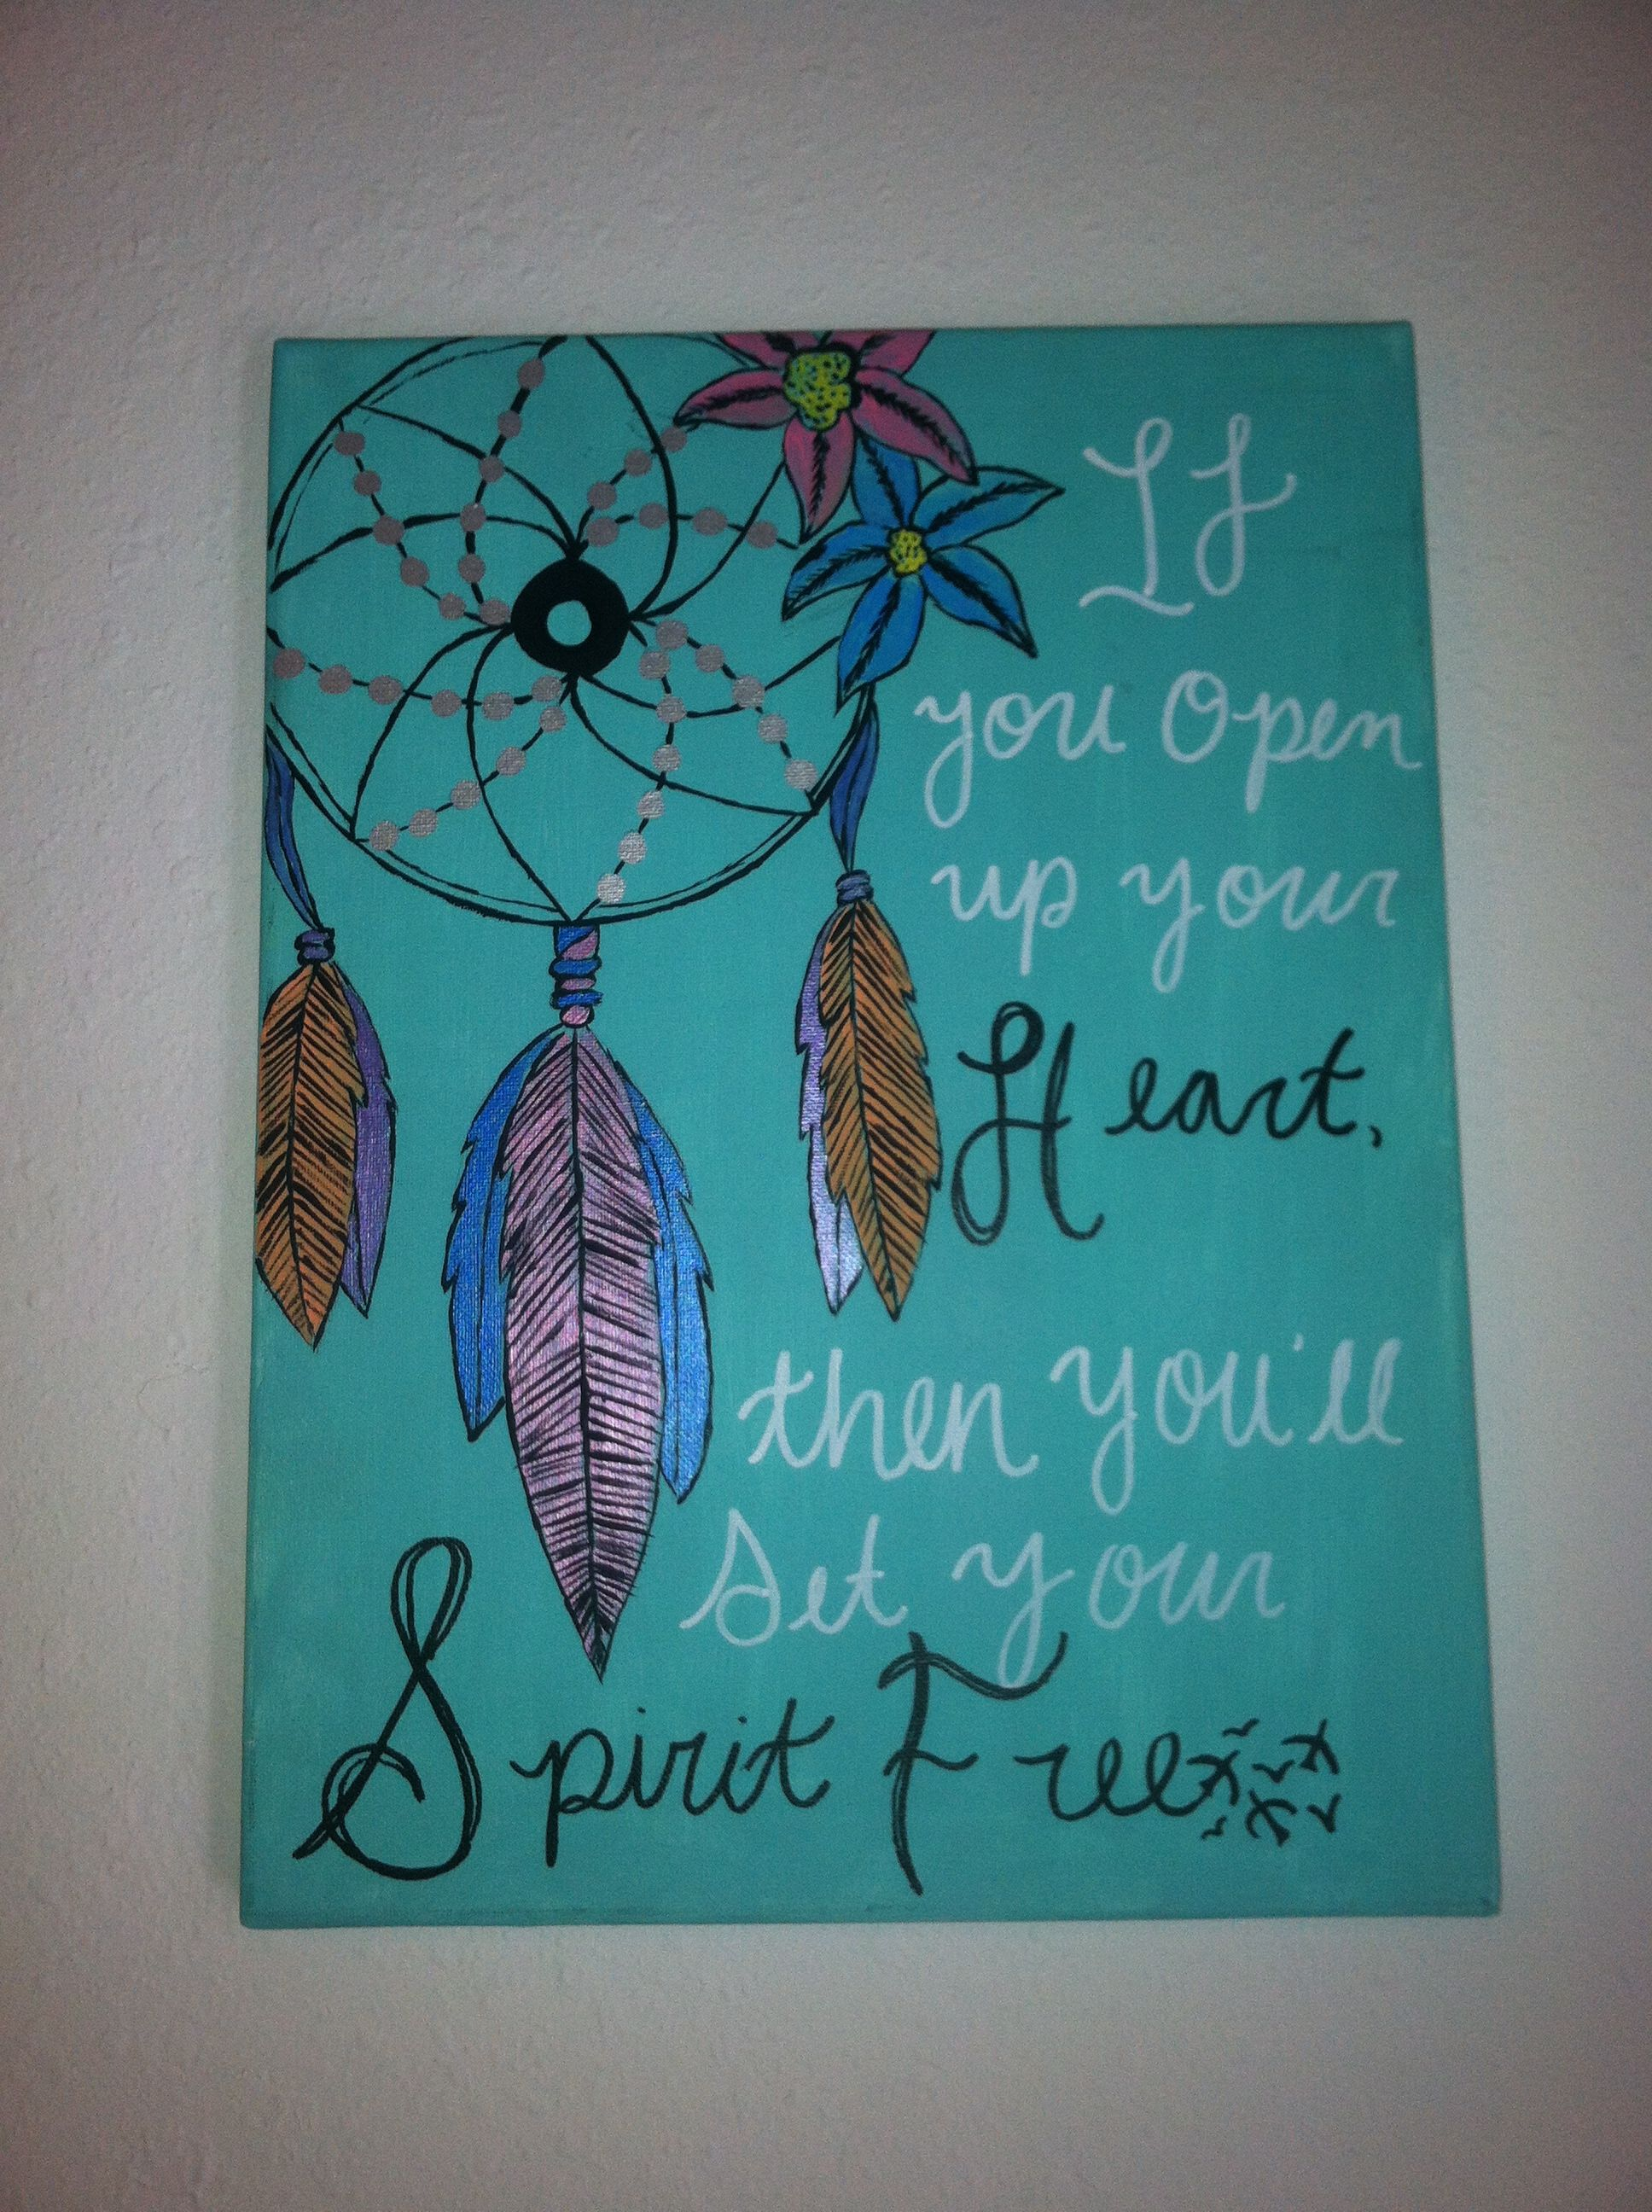 Canvas art. so pretty and I love the quote. Lindsey this made me think of you. Miss you. Maybe I could get one of your pictures on one with this saying.